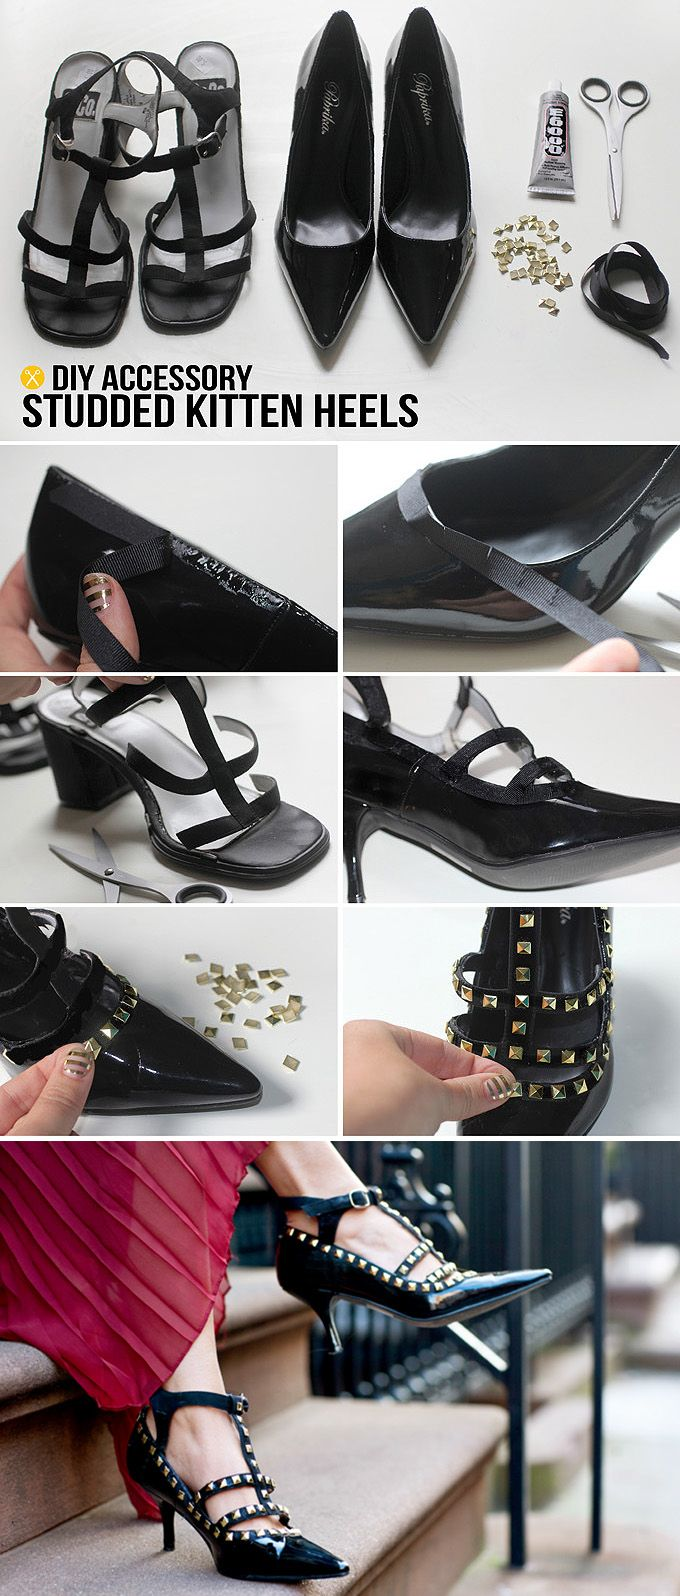 I Spy DIY: MY DIY | Studded Kitten Heels: